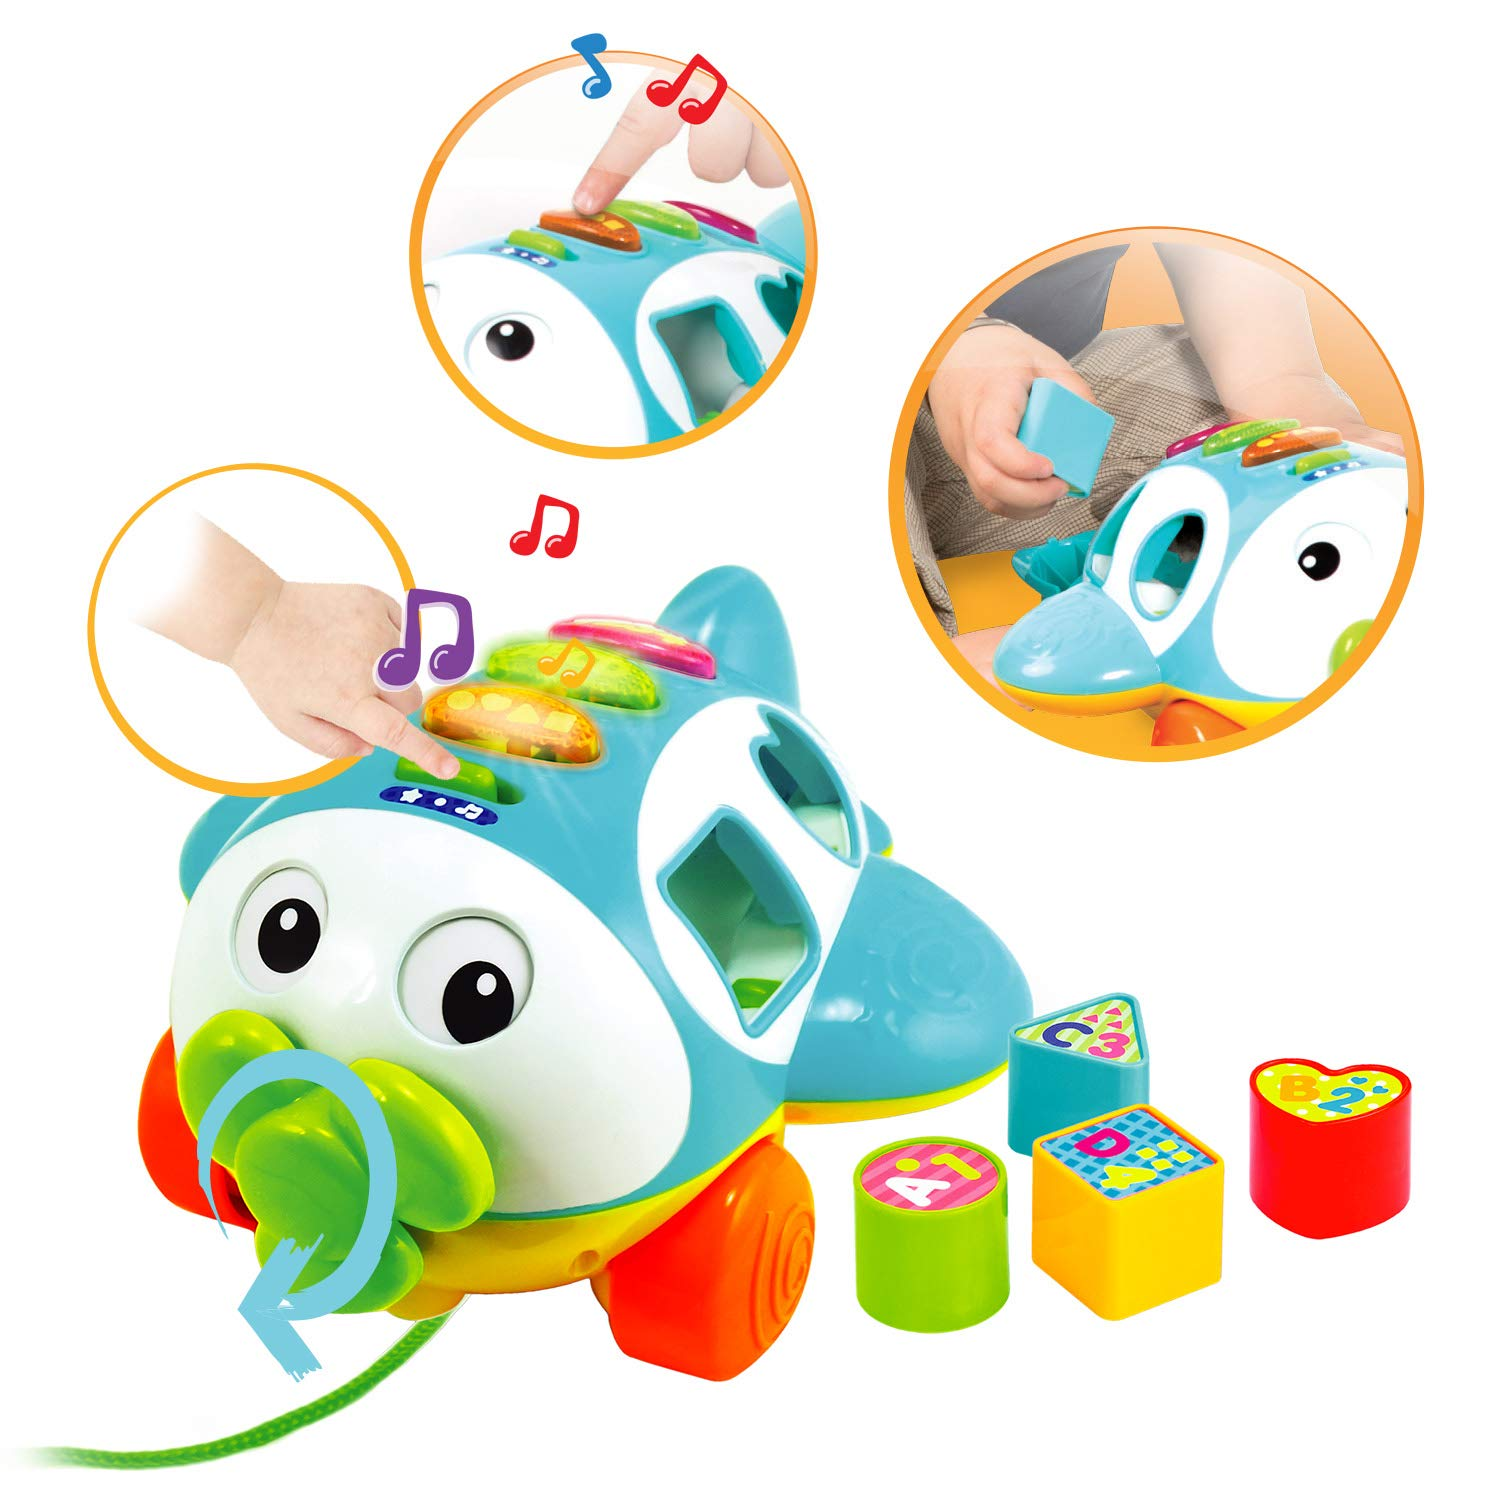 Talking Airplane Toy Music Block Sorting Activities Fine Motor Skills Toys for Toddler Playtime Ages 12 Months+ KiddoLab Musical Shape Sorter Plane Pull-Along Toy